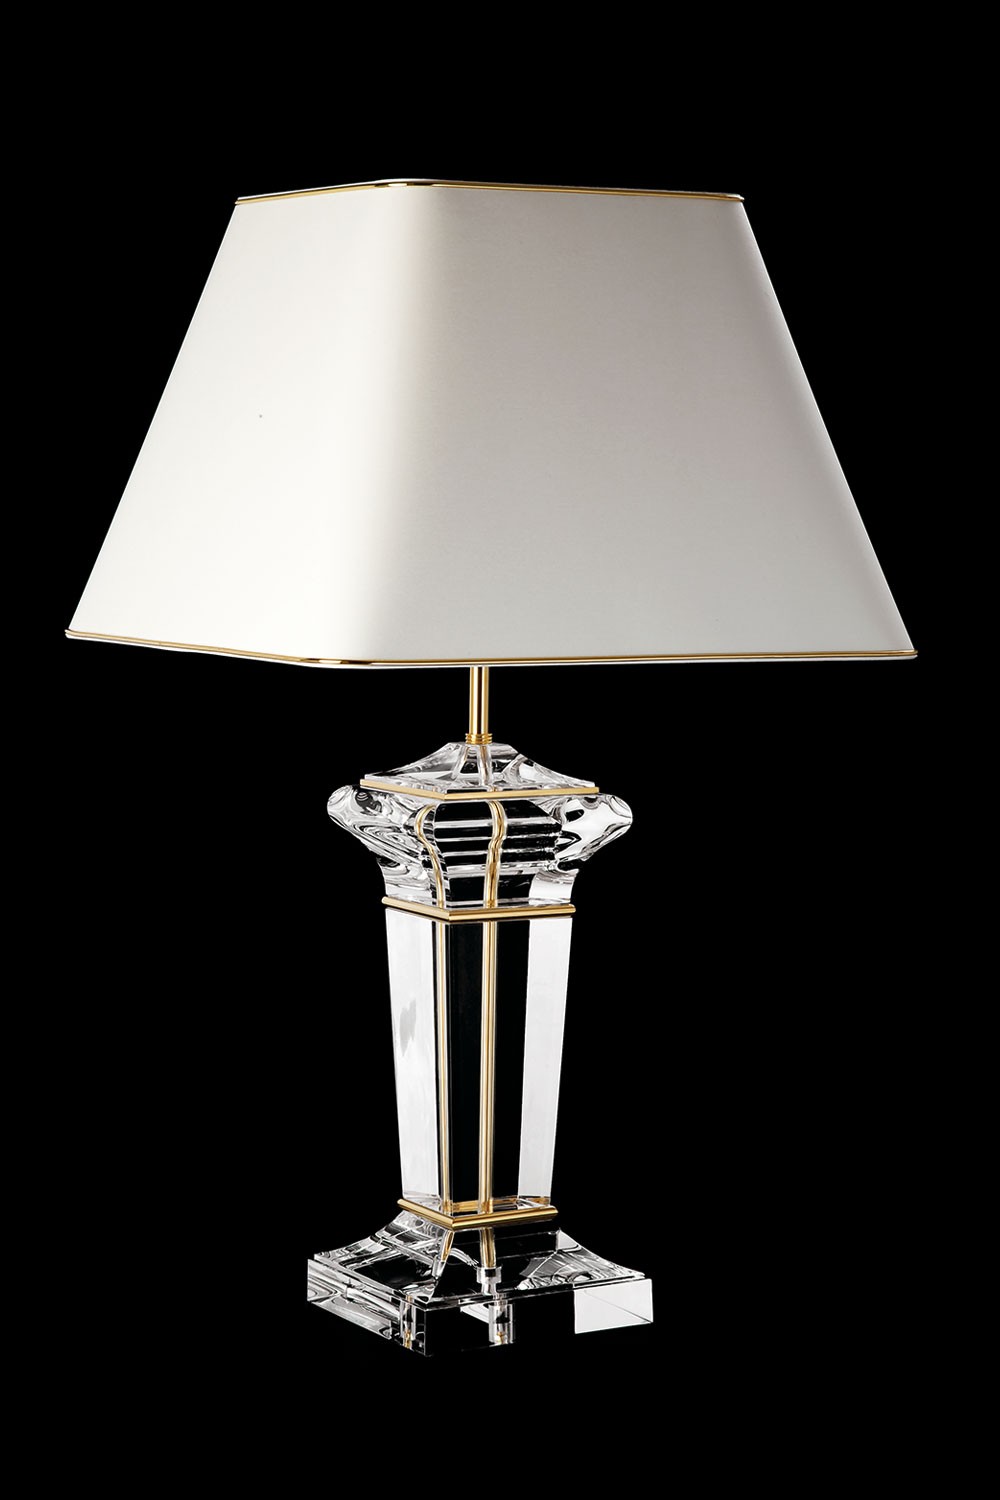 Clear 90 lamp, gilded or chrome base - Luxury lighting from Madelia Paris